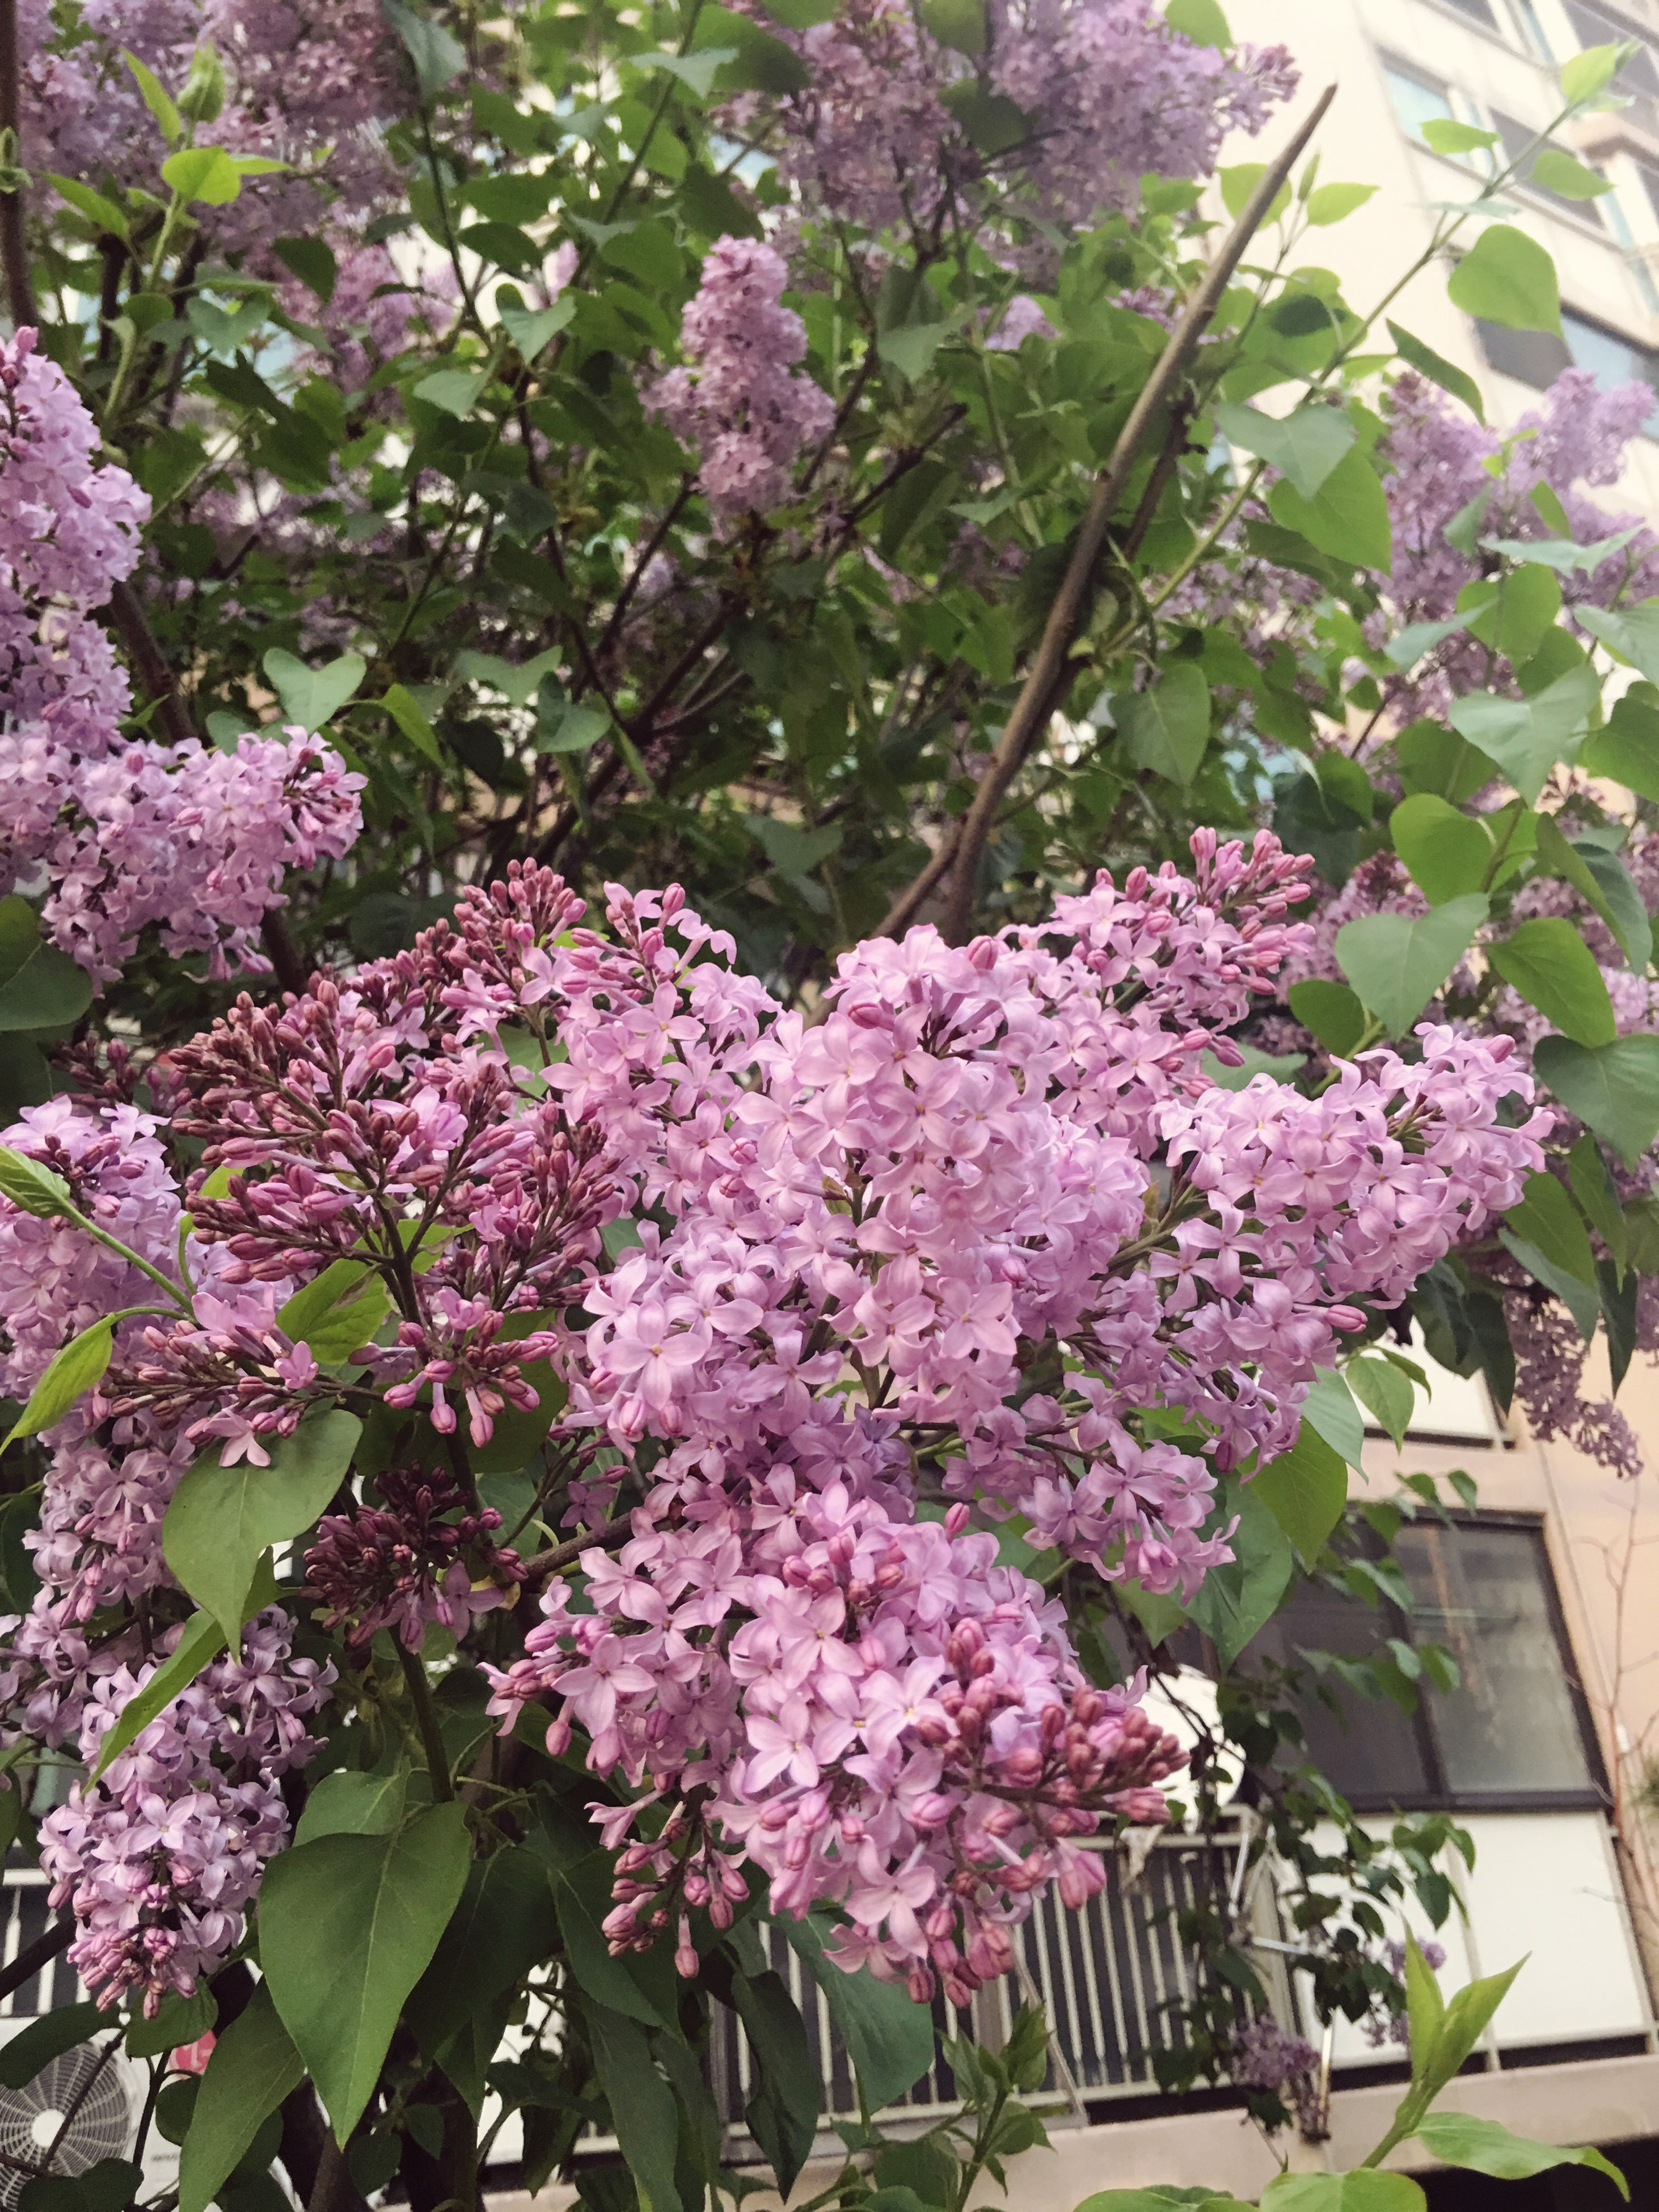 growth, flower, nature, blossom, spring, plant, no people, lilac, beauty in nature, freshness, day